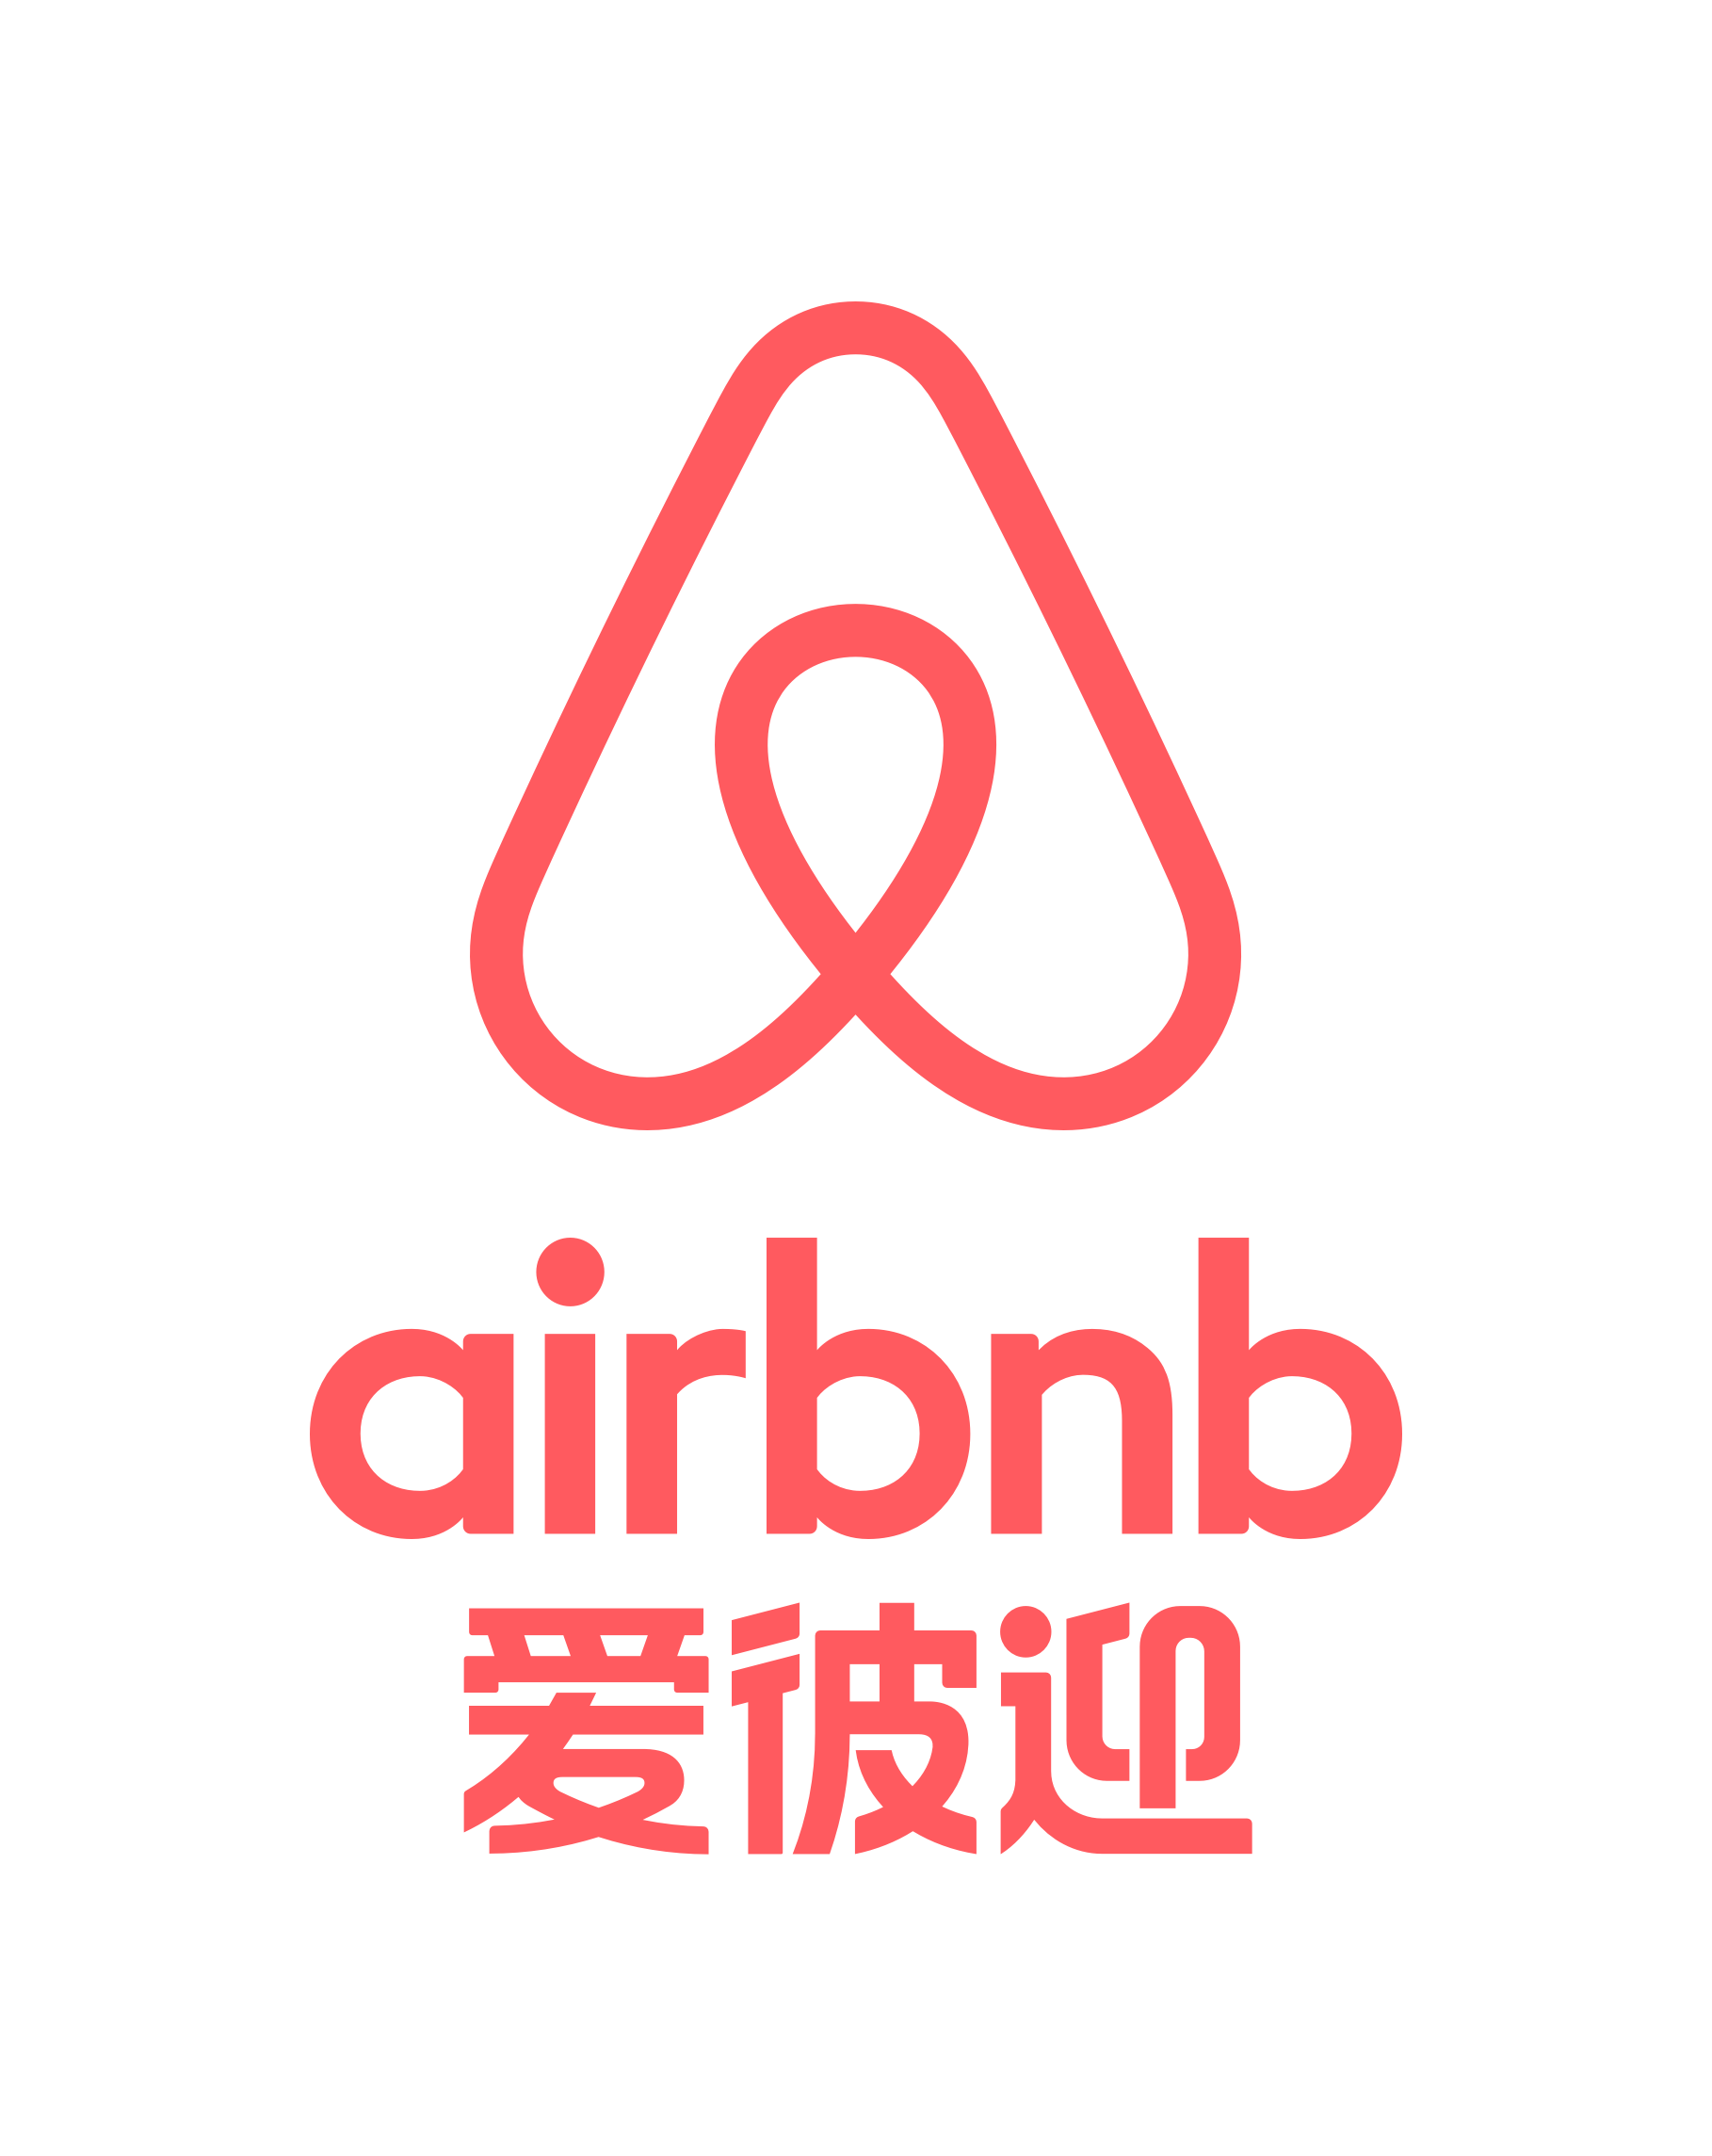 Airbnb Logo Png (97+ images in Collection) Page 2.